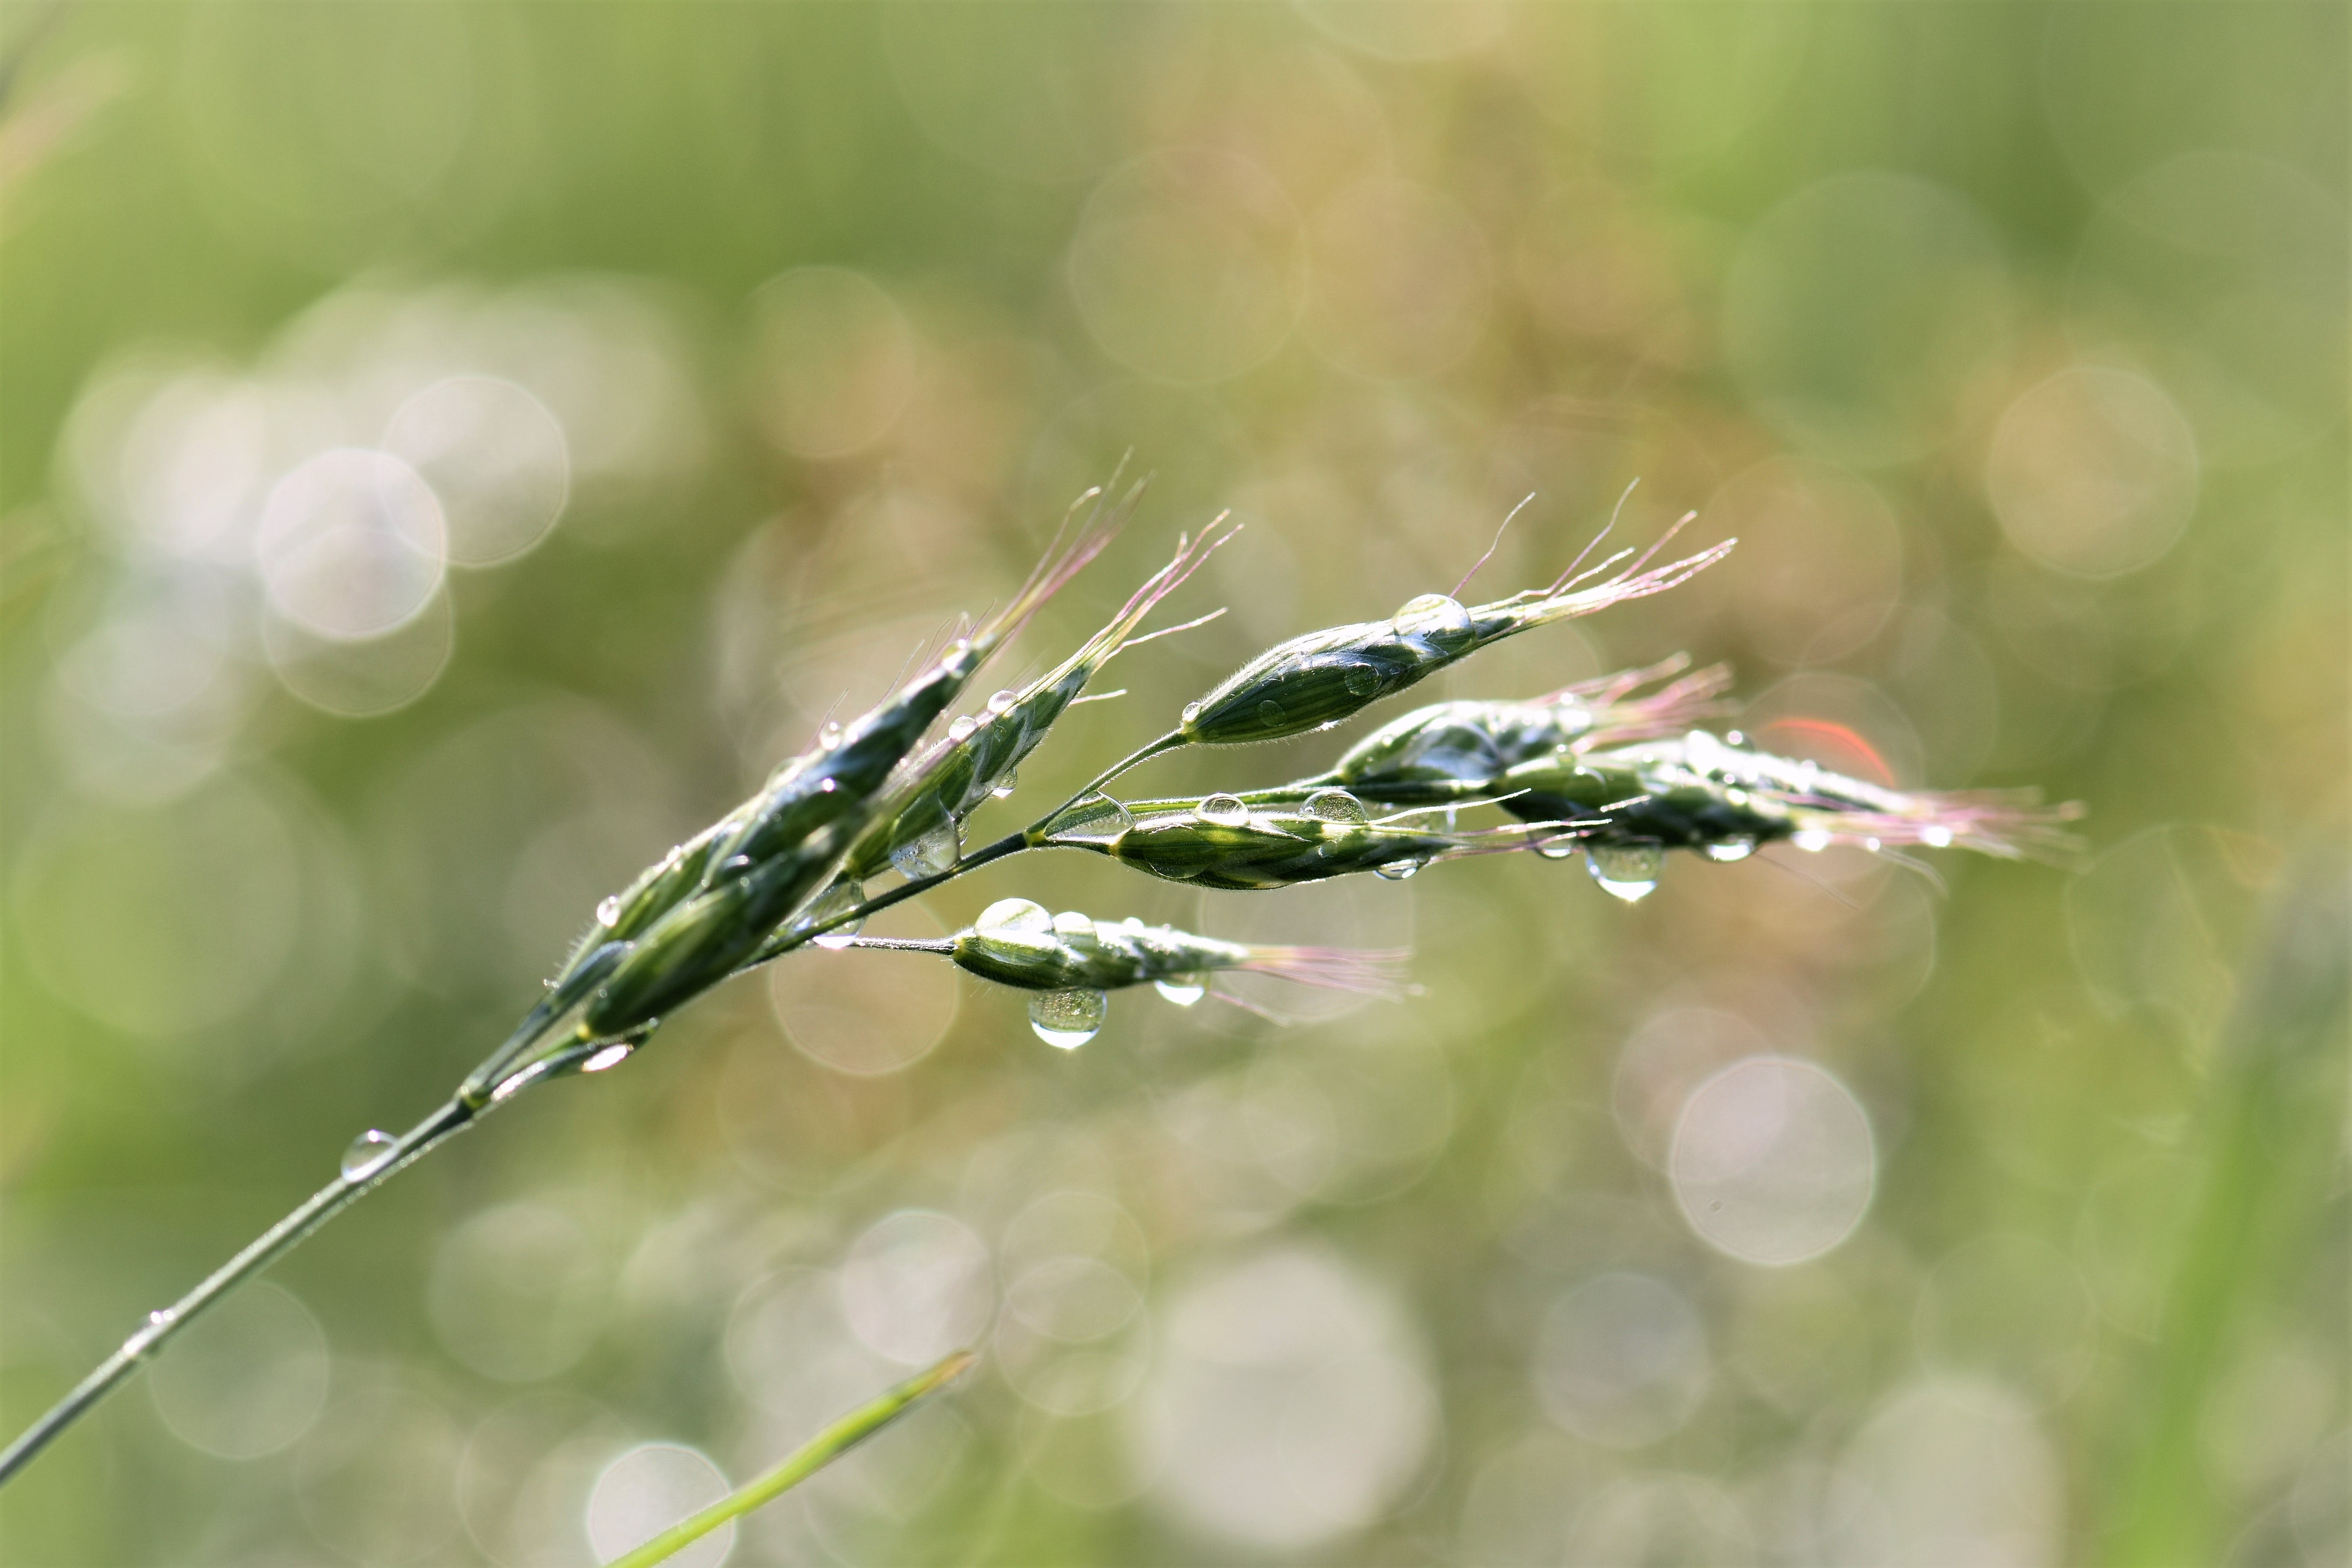 Wheat Bud in Selective Focus Photography